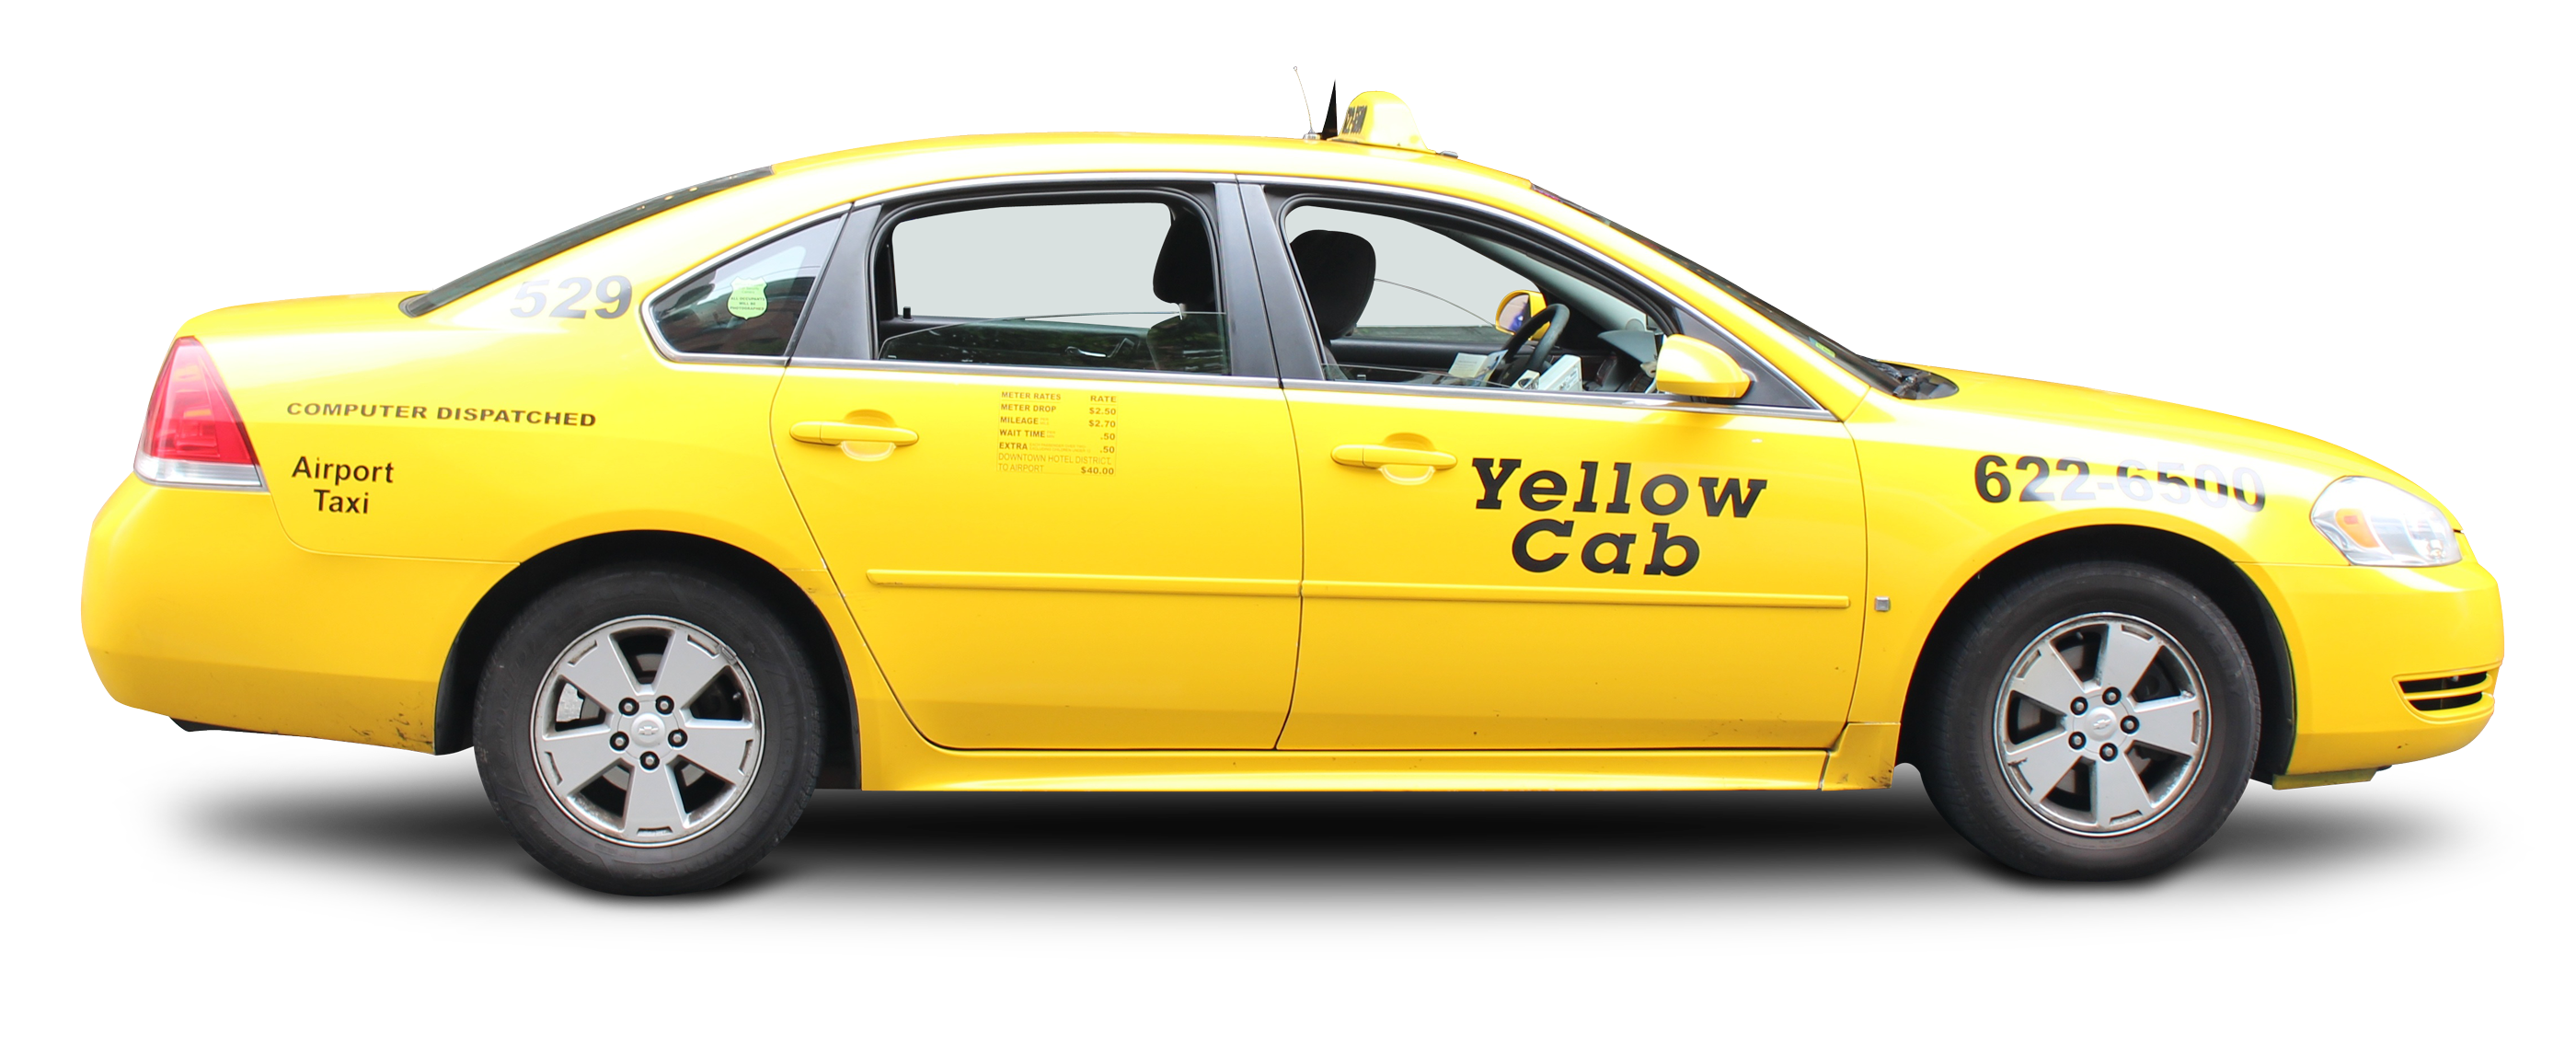 Download Taxi Cab Png Image Taxi Taxi Cab Yellow Taxi